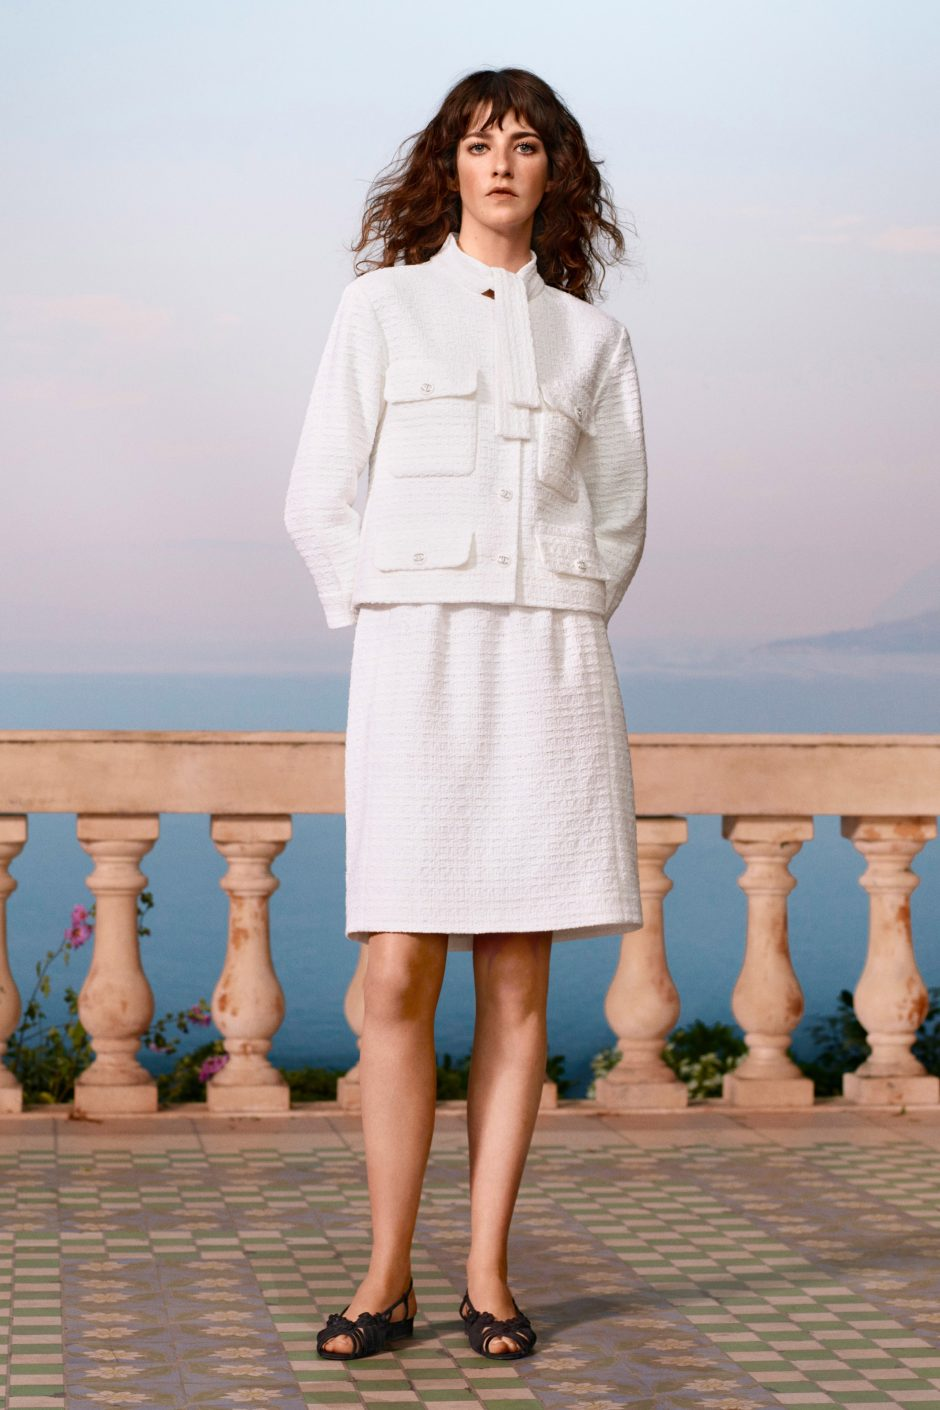 00022-Chanel-Resort-2021